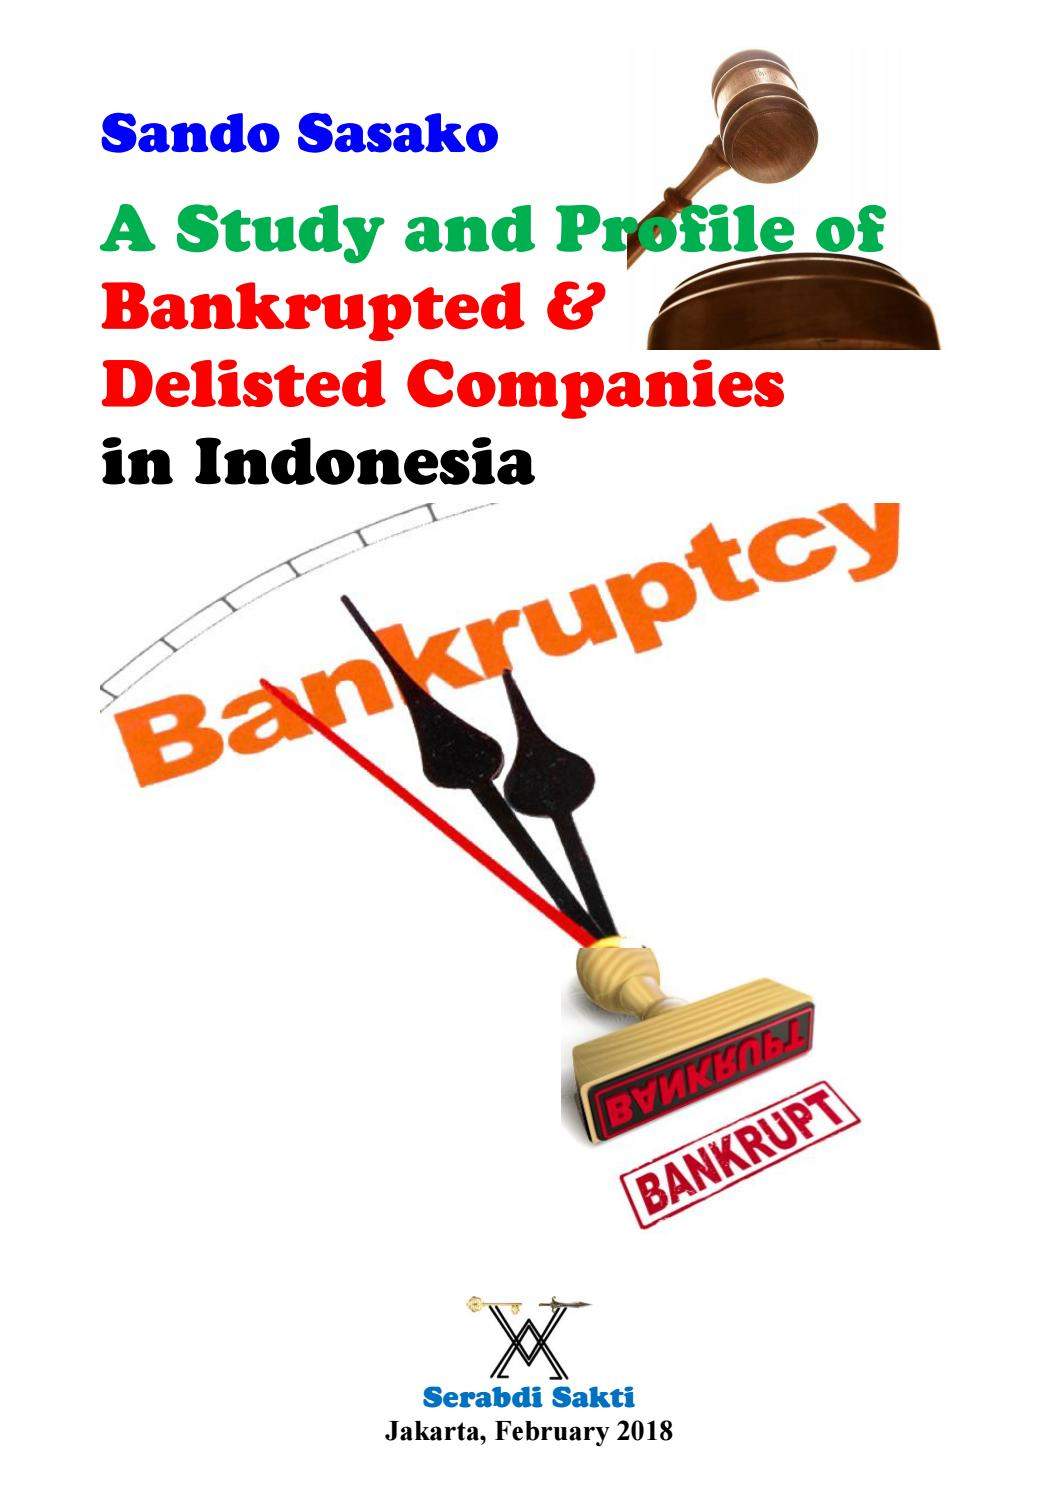 Profile Of Delisted Companies In Indonesia With Listing Regulations In English By The1uploader Issuu